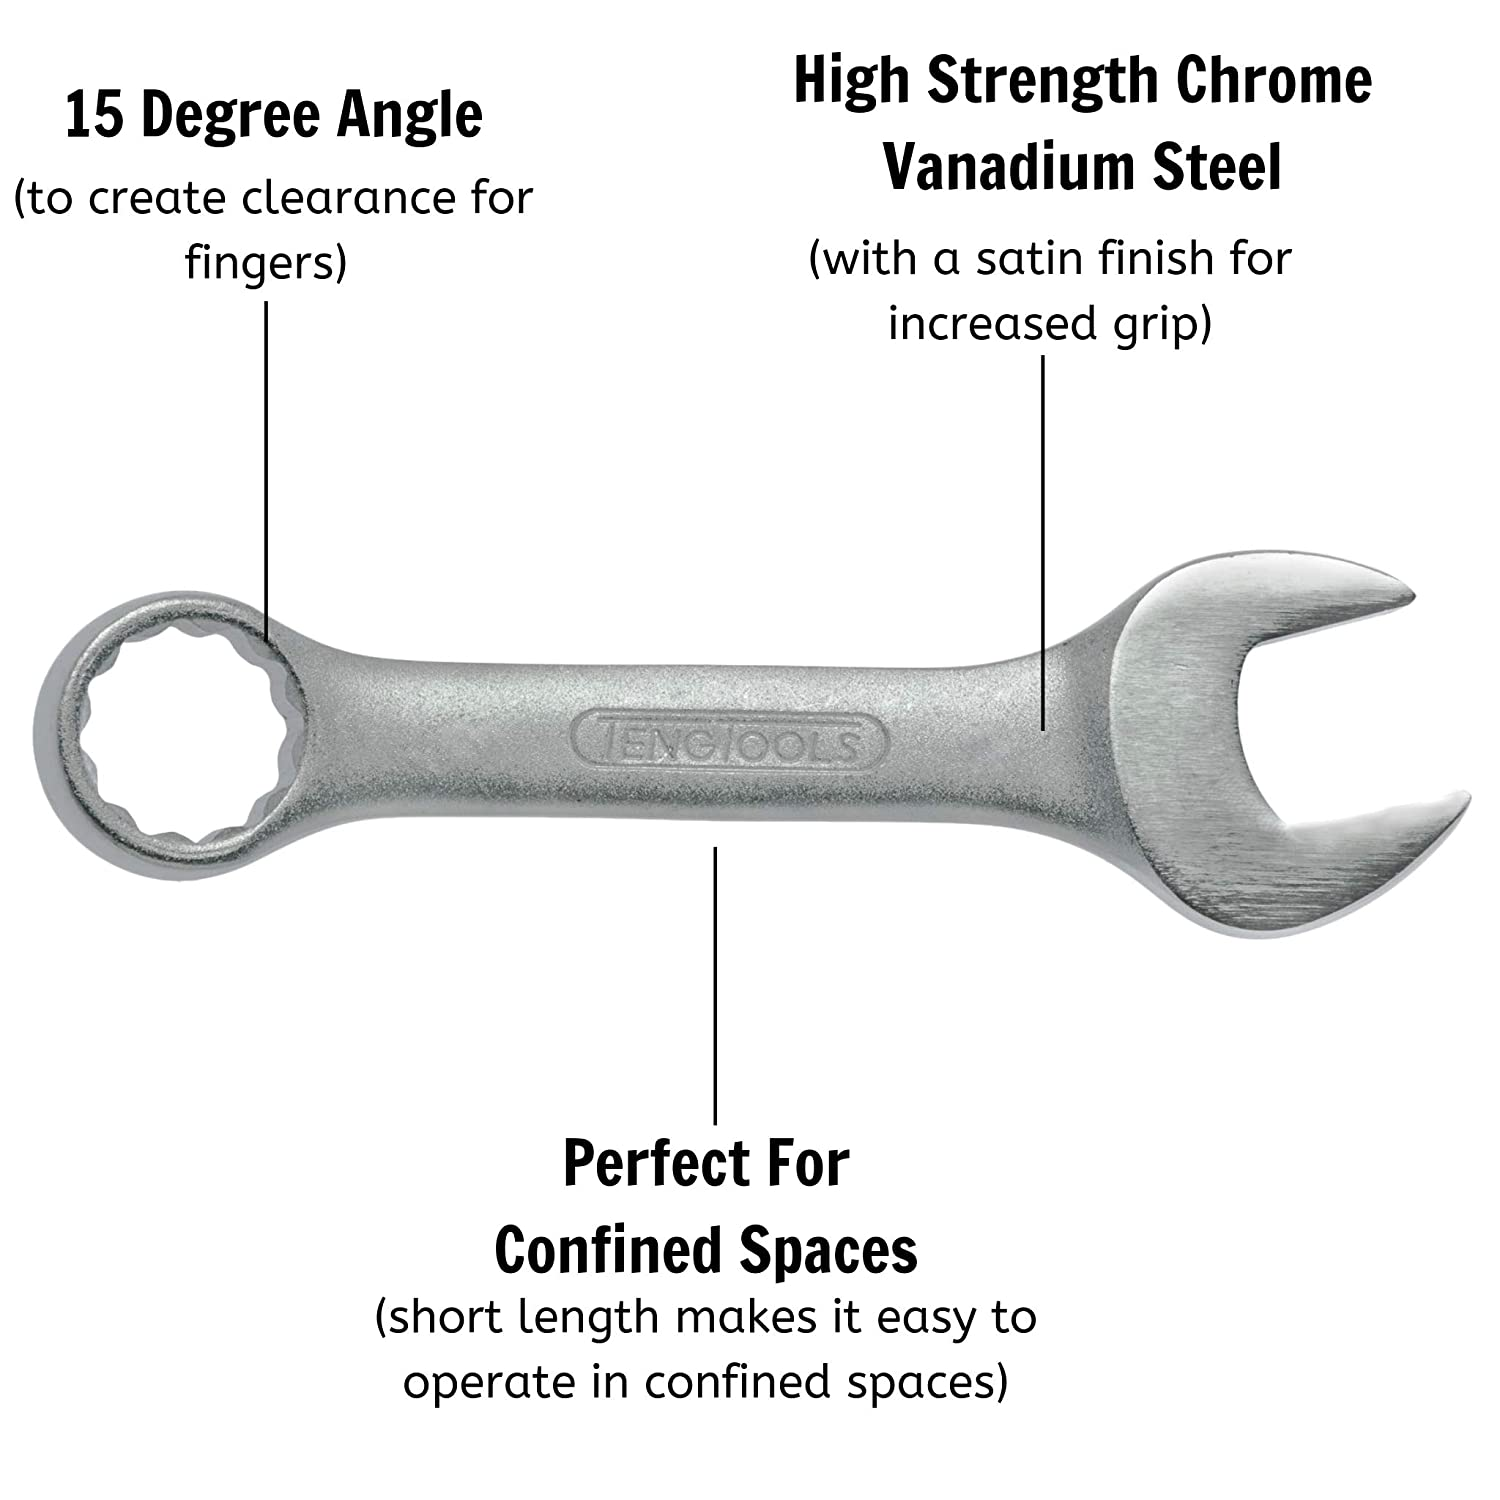 TengTools Combination Spanner extracorta 19/ mm